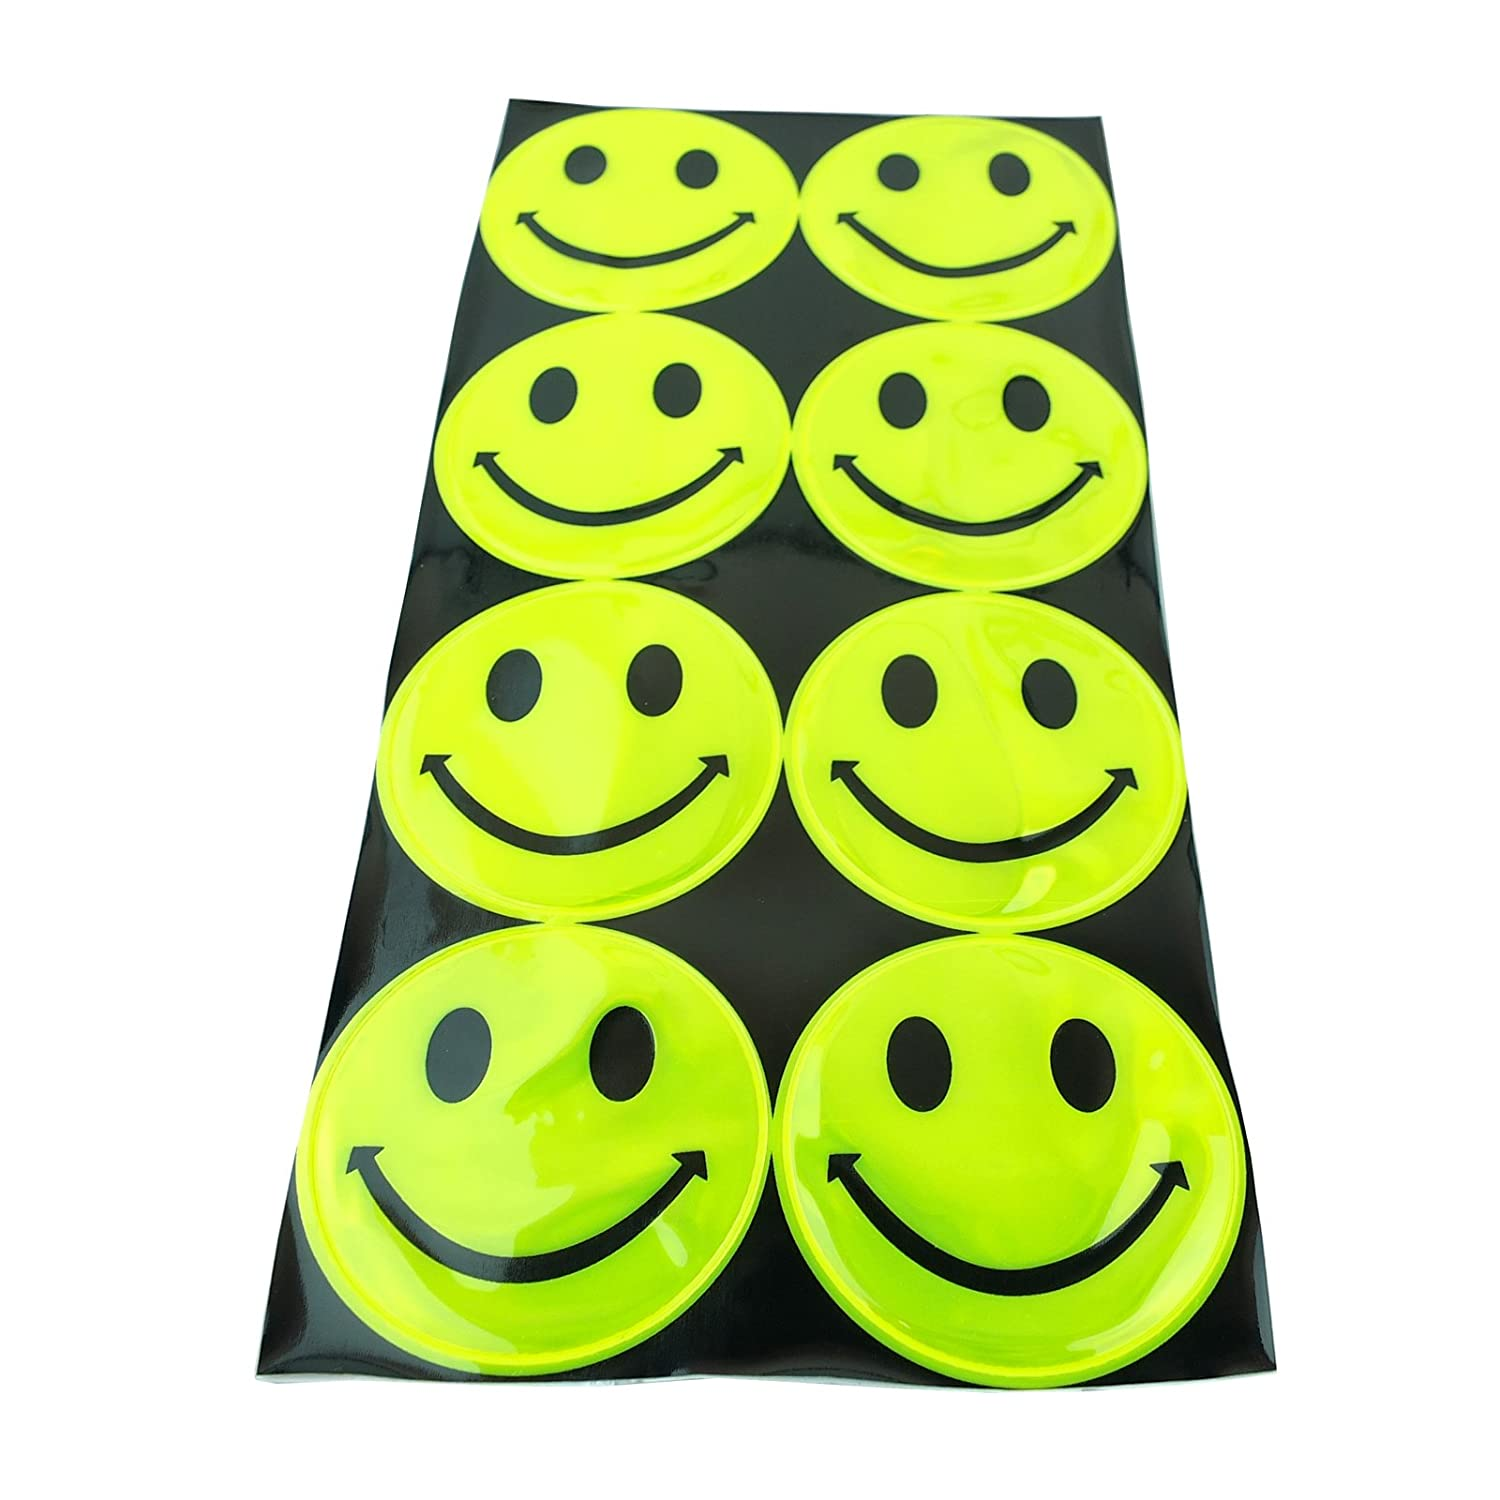 Reflective Stickers Self Adhesive Smiley Face High Visibility Cycling Reflective Stickers